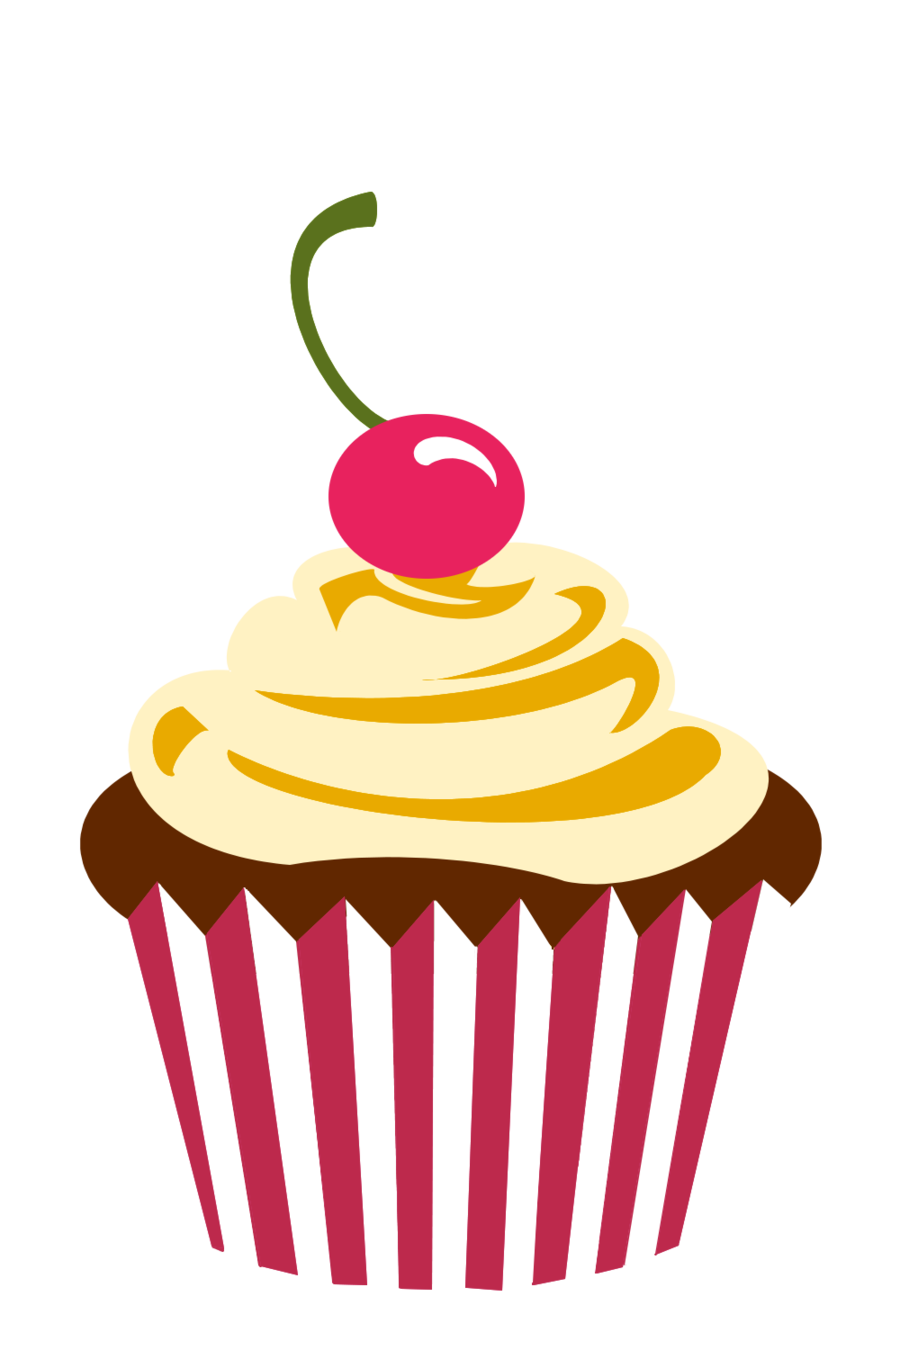 Princess clipart cupcakes, Princess cupcakes Transparent.